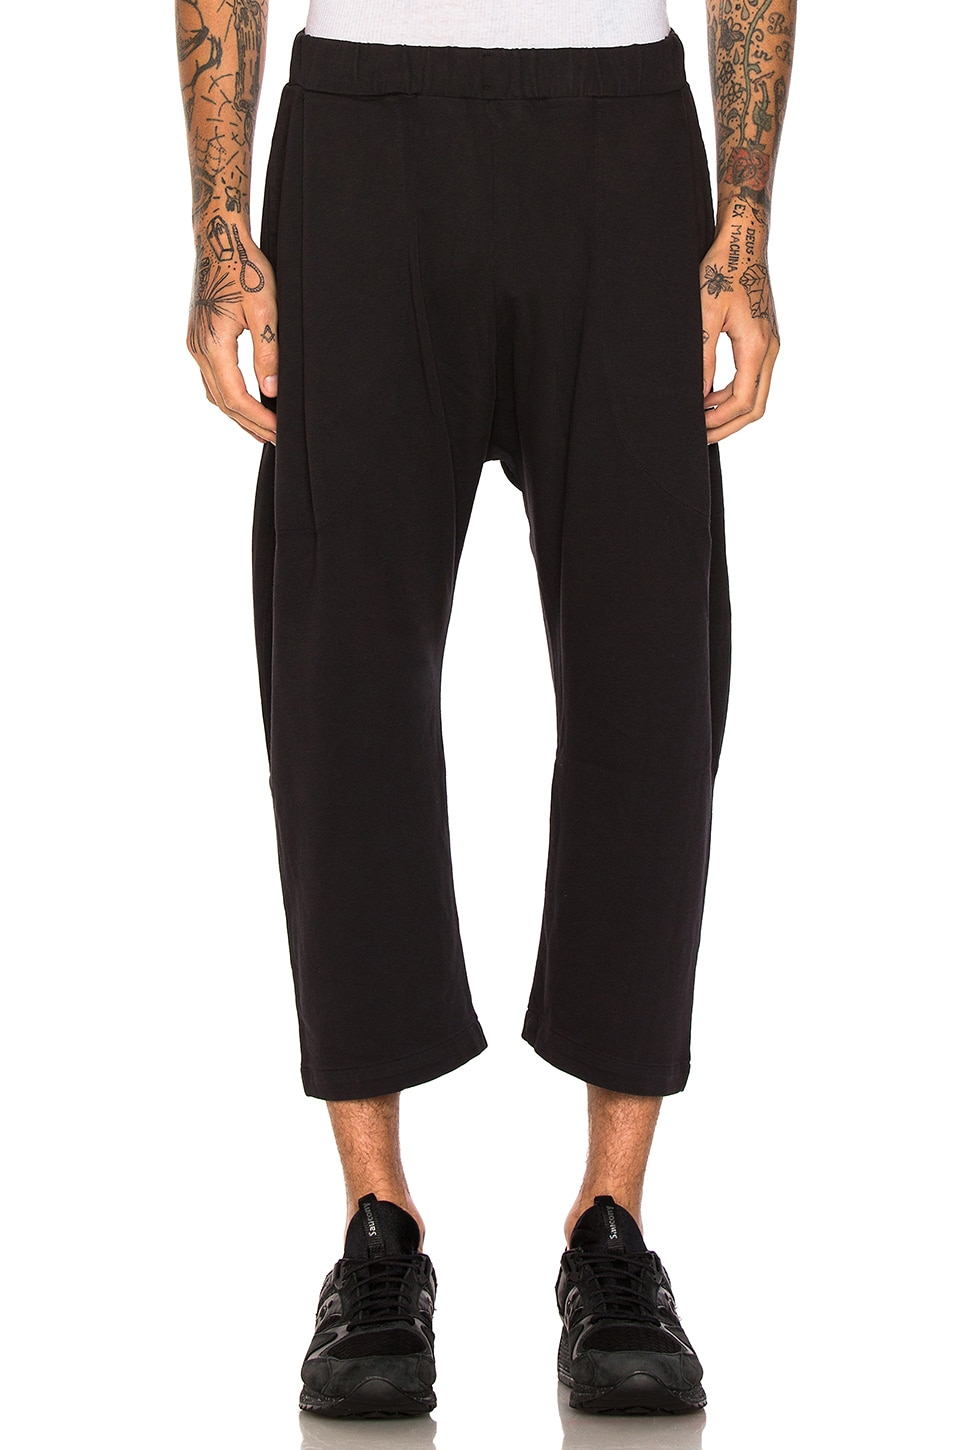 Buffalo Pants in Pirate Black by Willy Chavarria